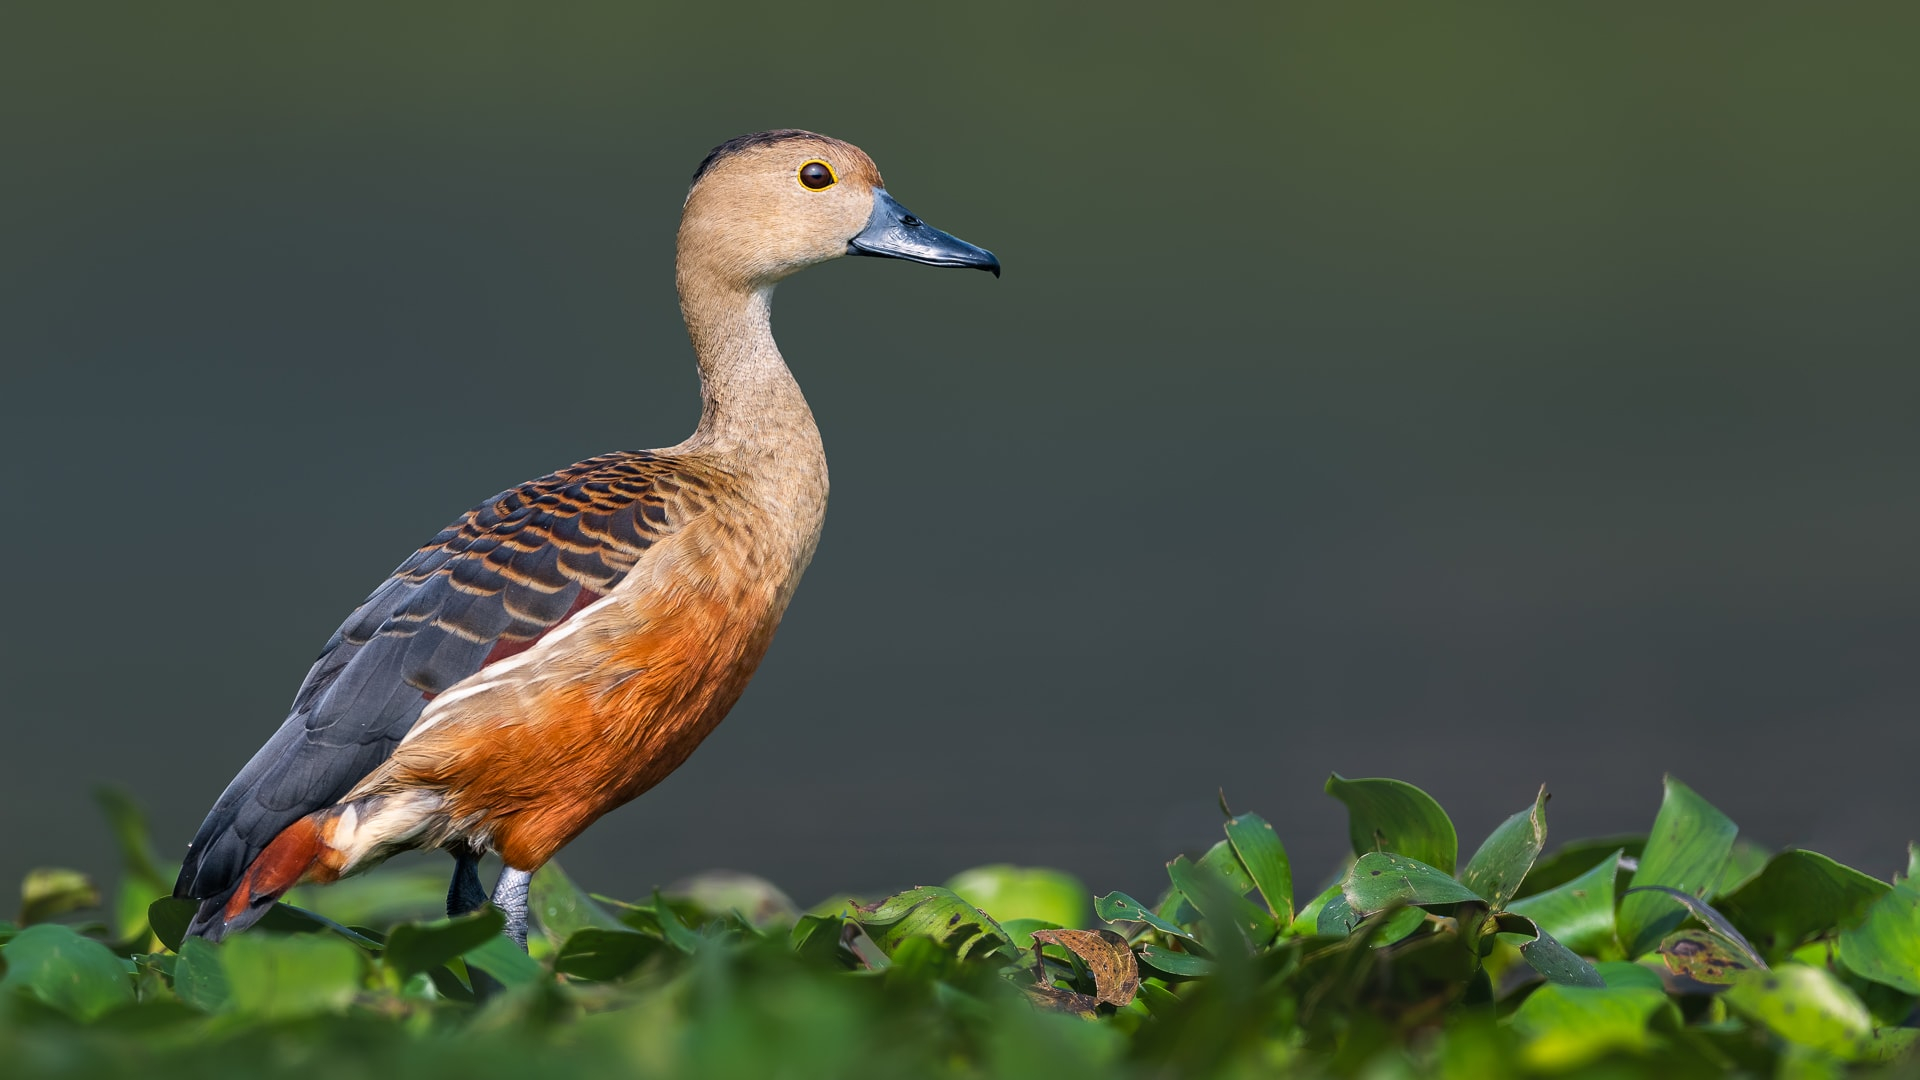 """Perhaps the most cheerful of our resident ducks is the lesser-whistling teal (Dendrocygna javanica), a smallish cinnamon-coloured duck with an upright posture and a cheeky schoolboy """"seasick-seasick"""" whistle, usually given on the wing. Photo: Abhishek Das"""